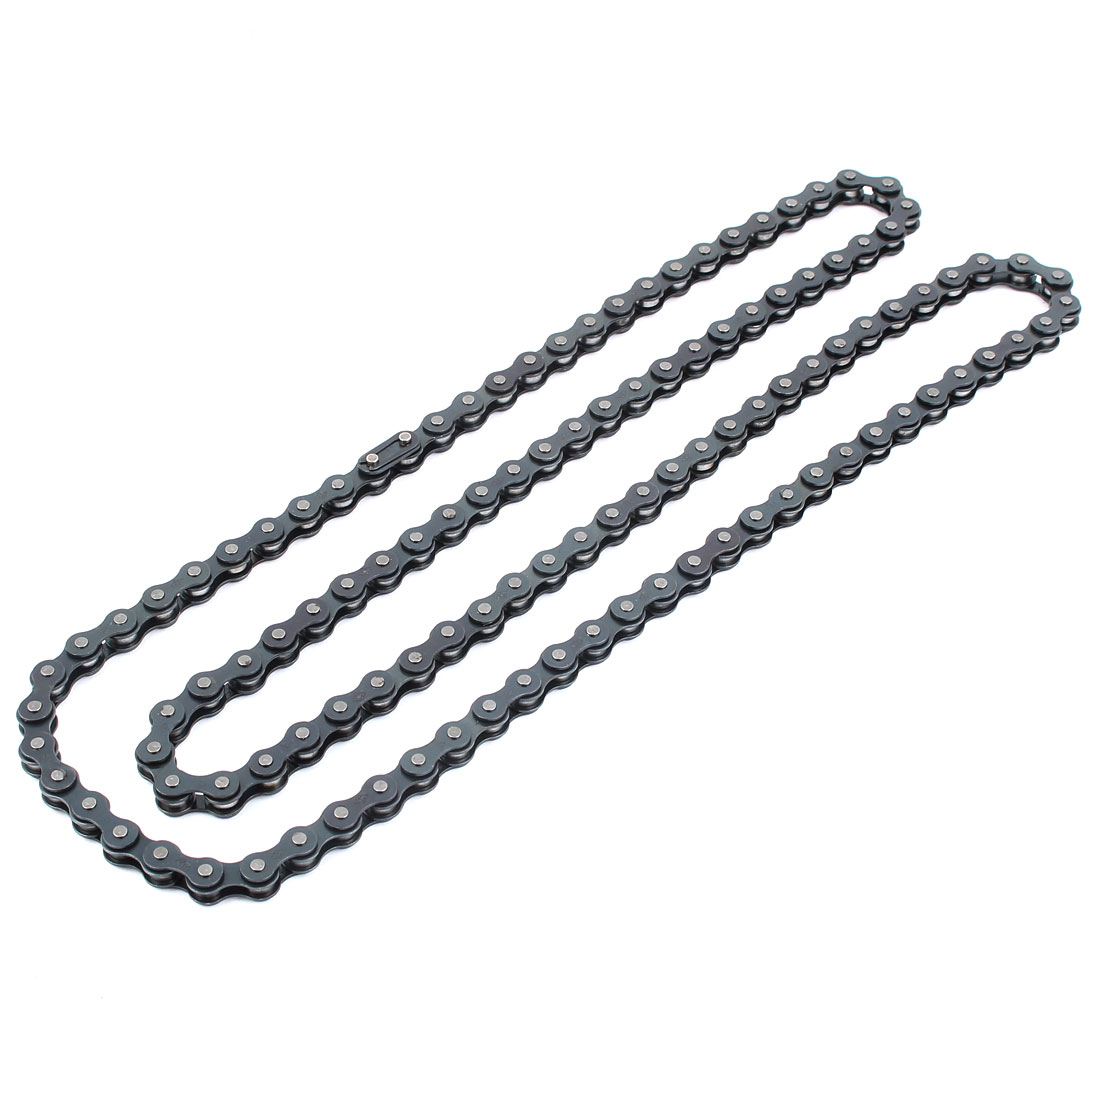 "145cm 57"" Length 114 Links Metal Speed Mountain Bike Bcycle Cycling Chain"